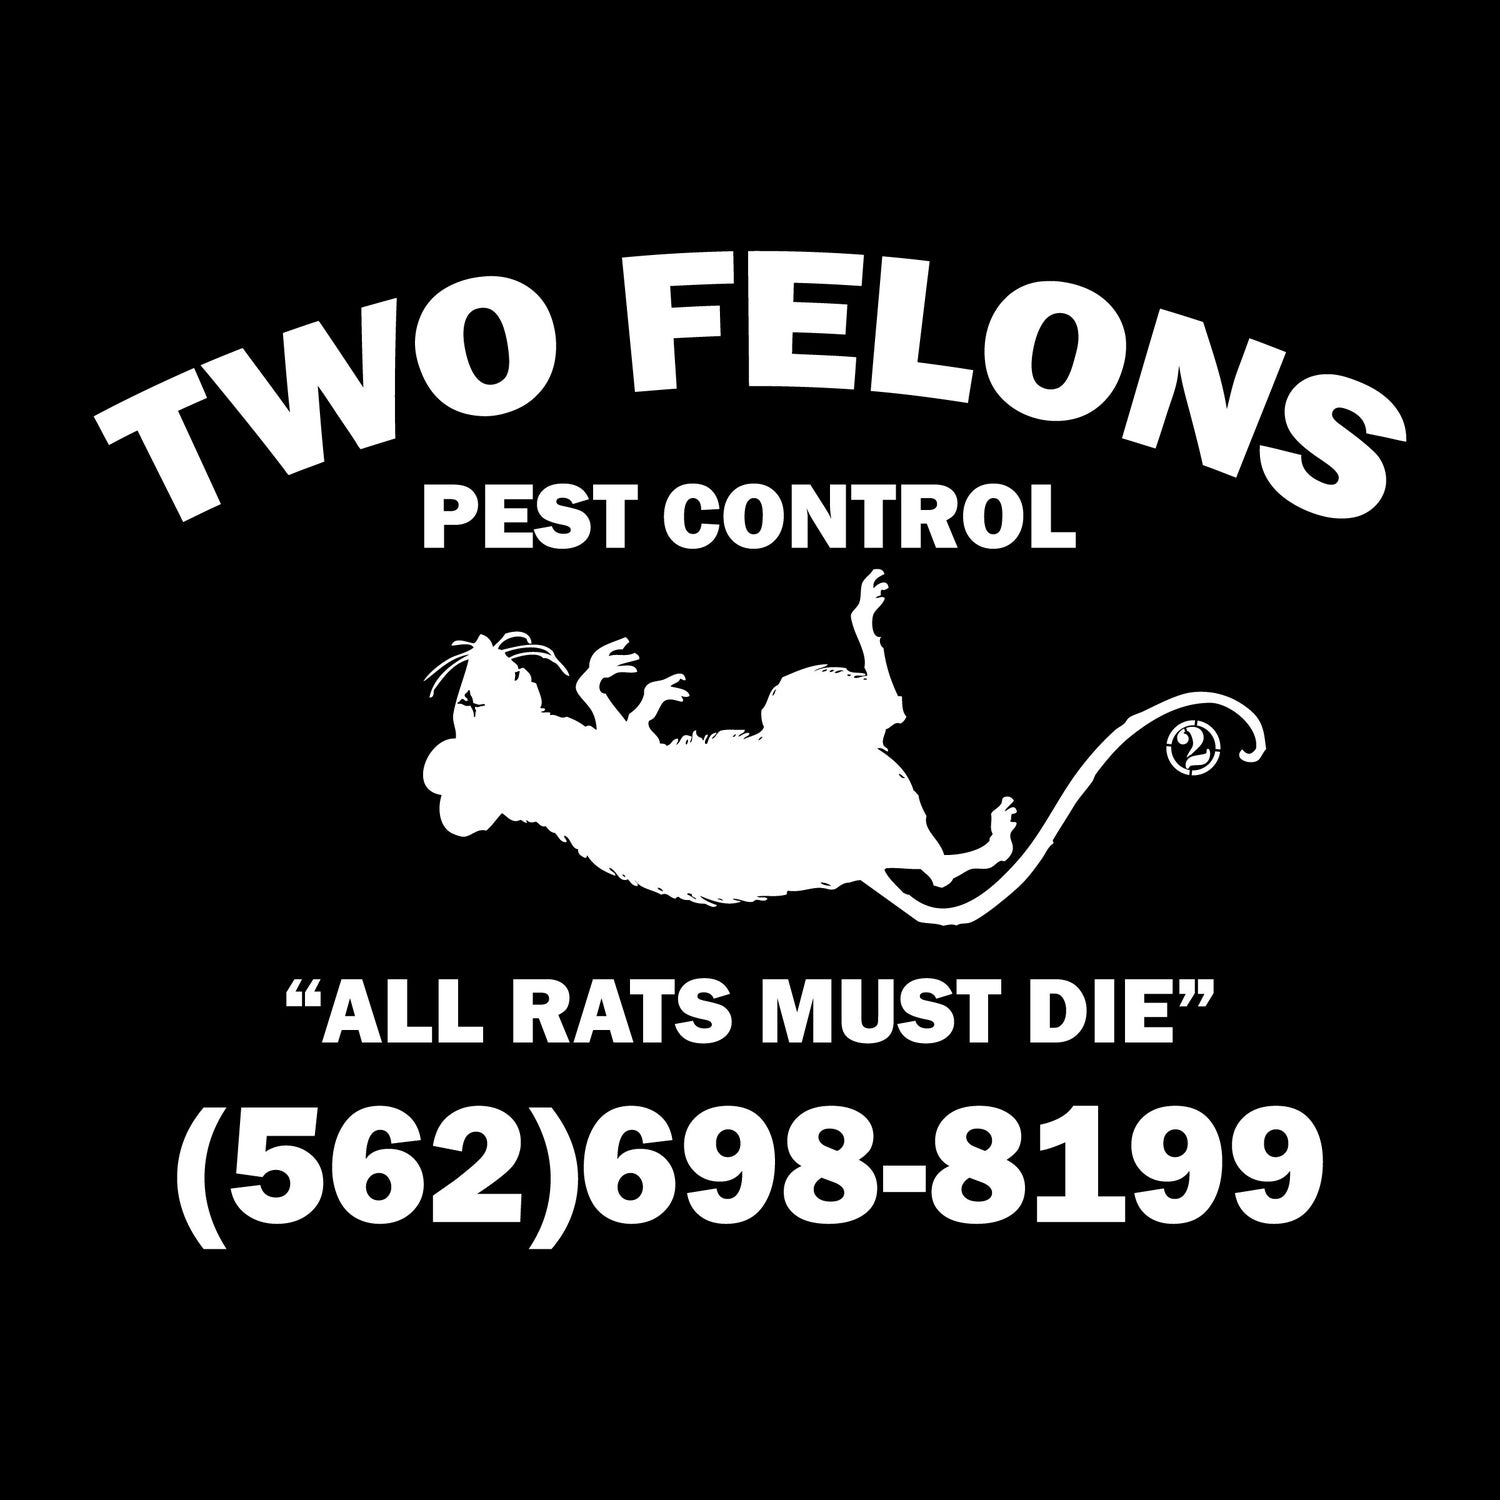 """Image of Two Felons """"Pest Control"""" (black)"""